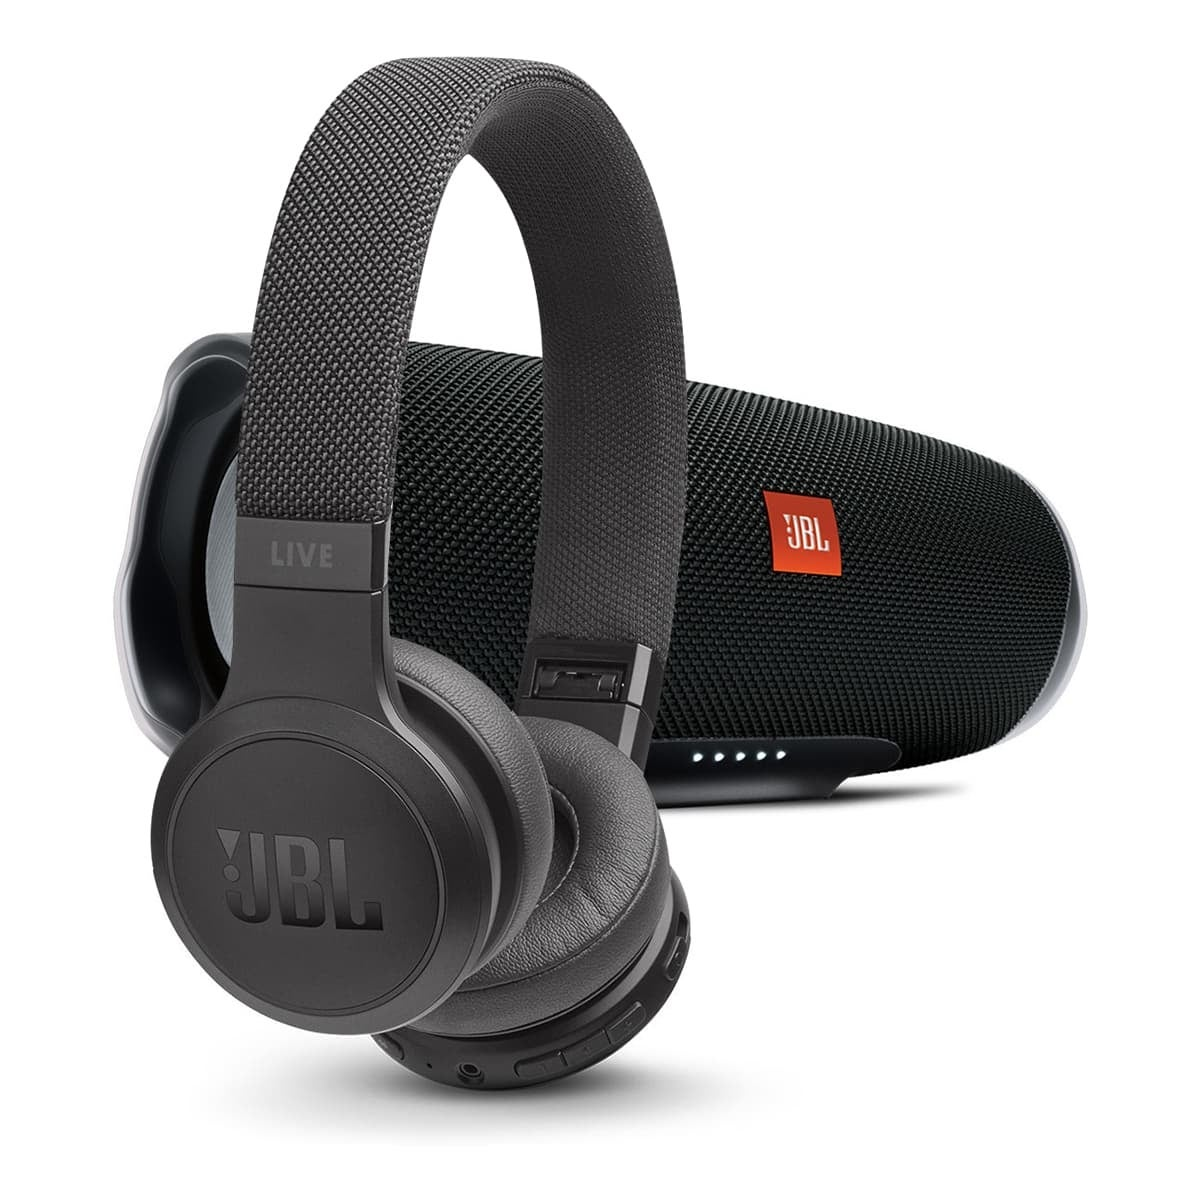 Shop Jbl Charge 4 Portable Bluetooth Speaker With Live 400bt Wireless On Ear Headphones With Voice Control Black Black Overstock 30511935